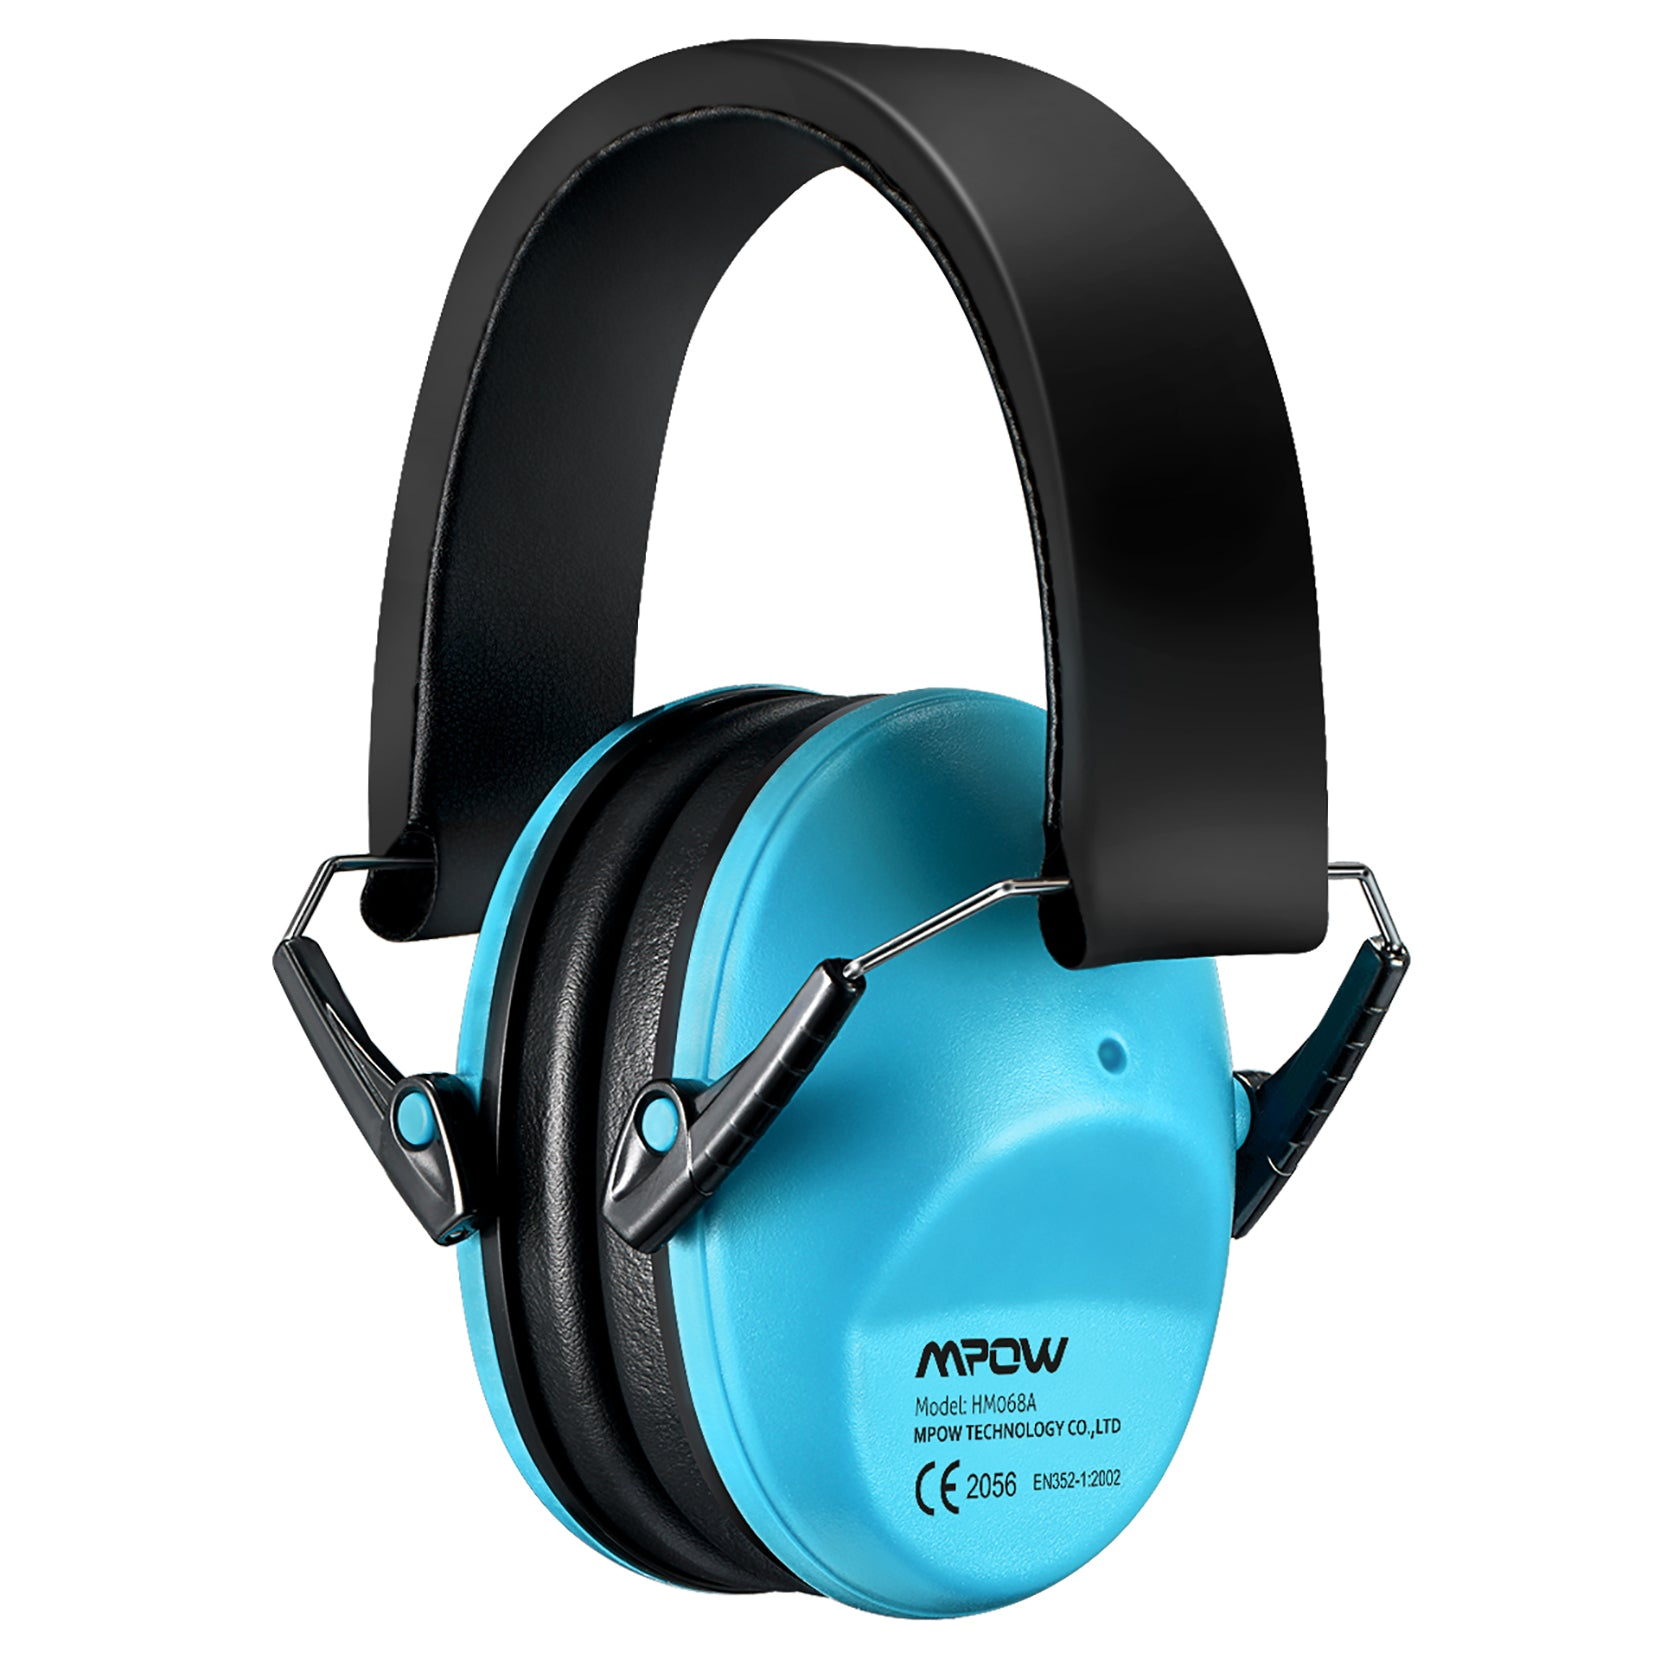 MPOW HM068A Kids Ear Protection, NRR 25dB Noise Reduction Ear Muffs